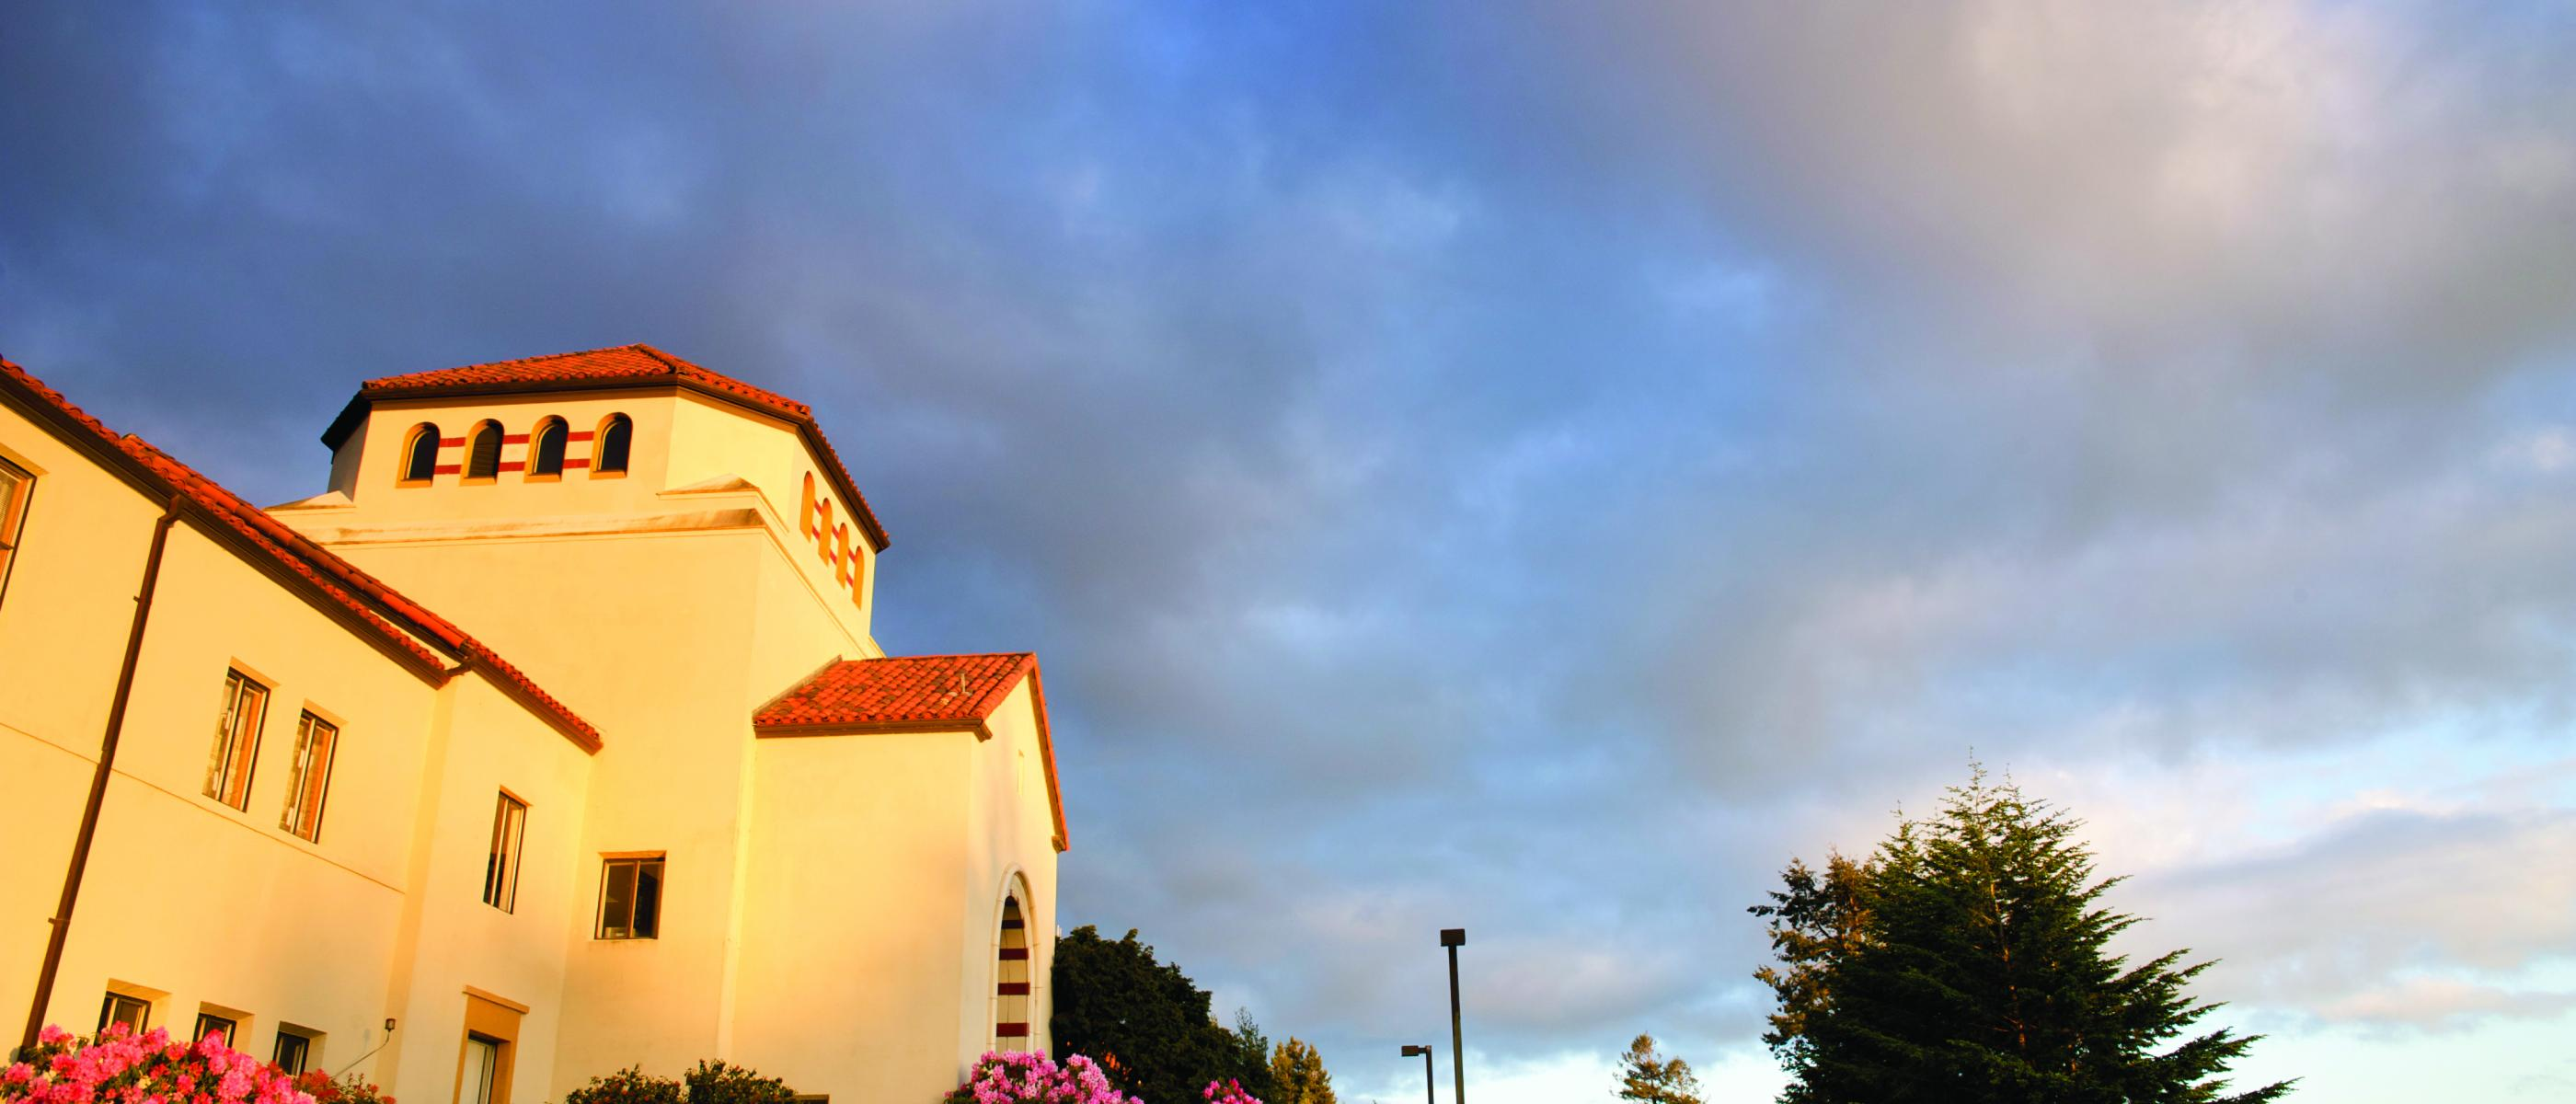 Founders Hall at Humboldt State University